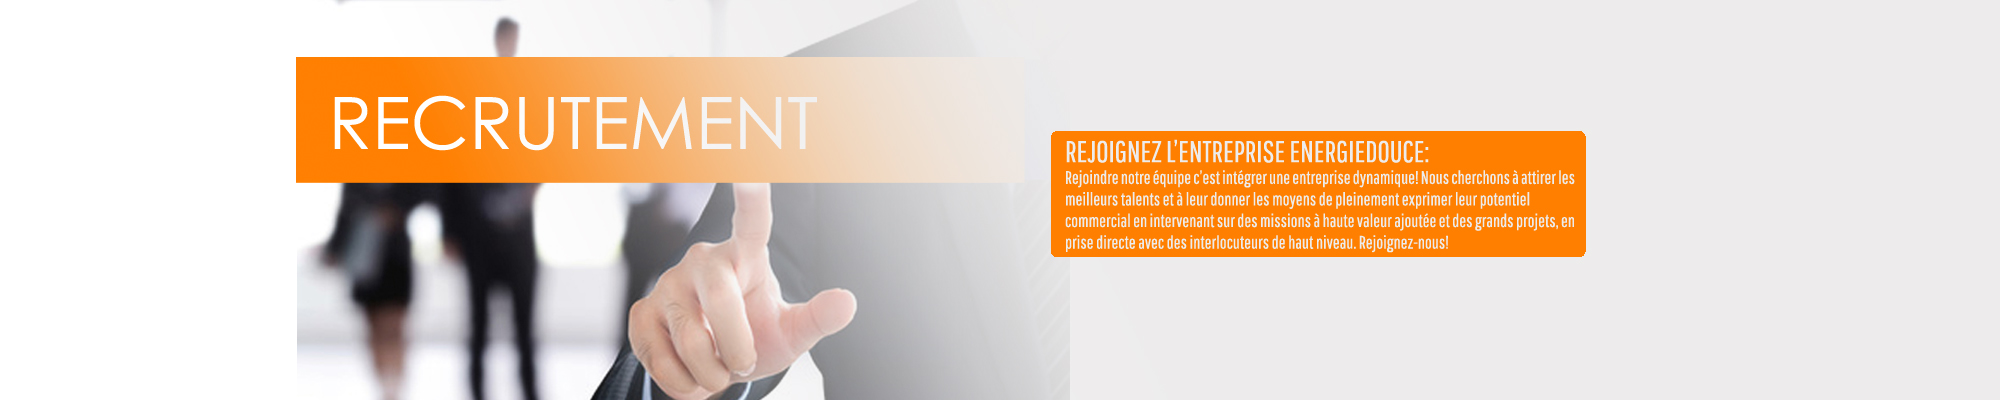 7006679Slideshow-recrutement